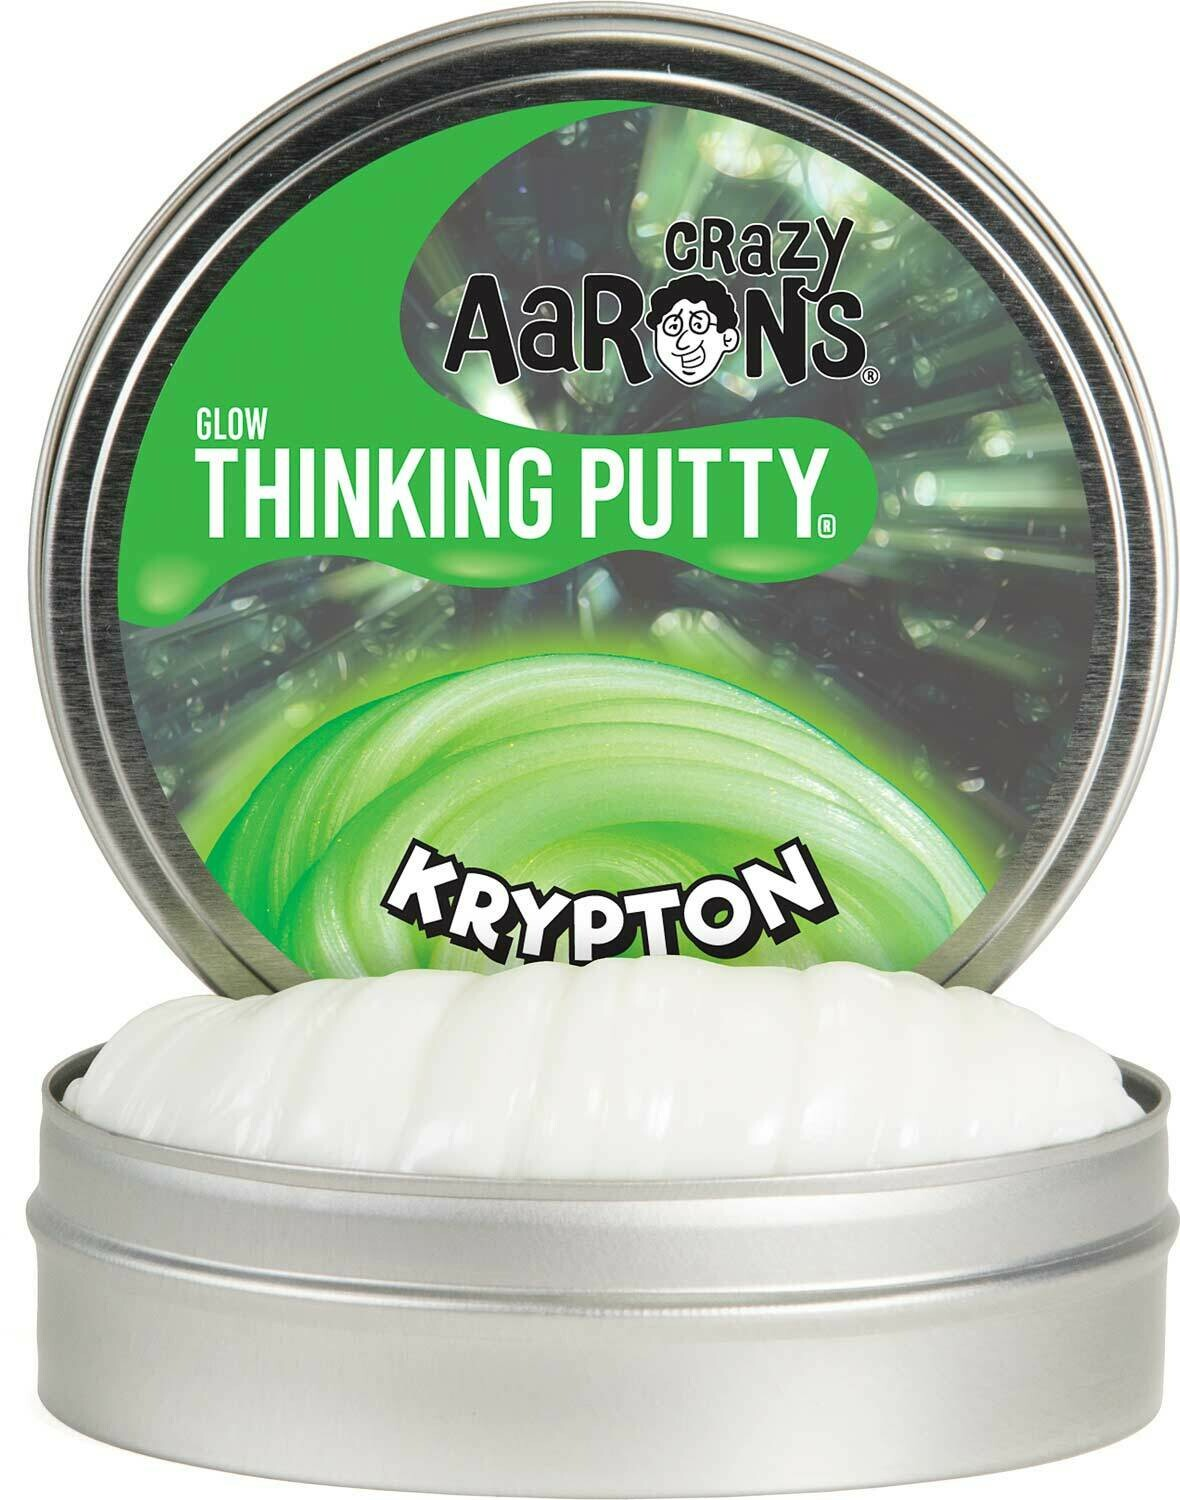 Crazy Aarons Krypton Thinking Putty